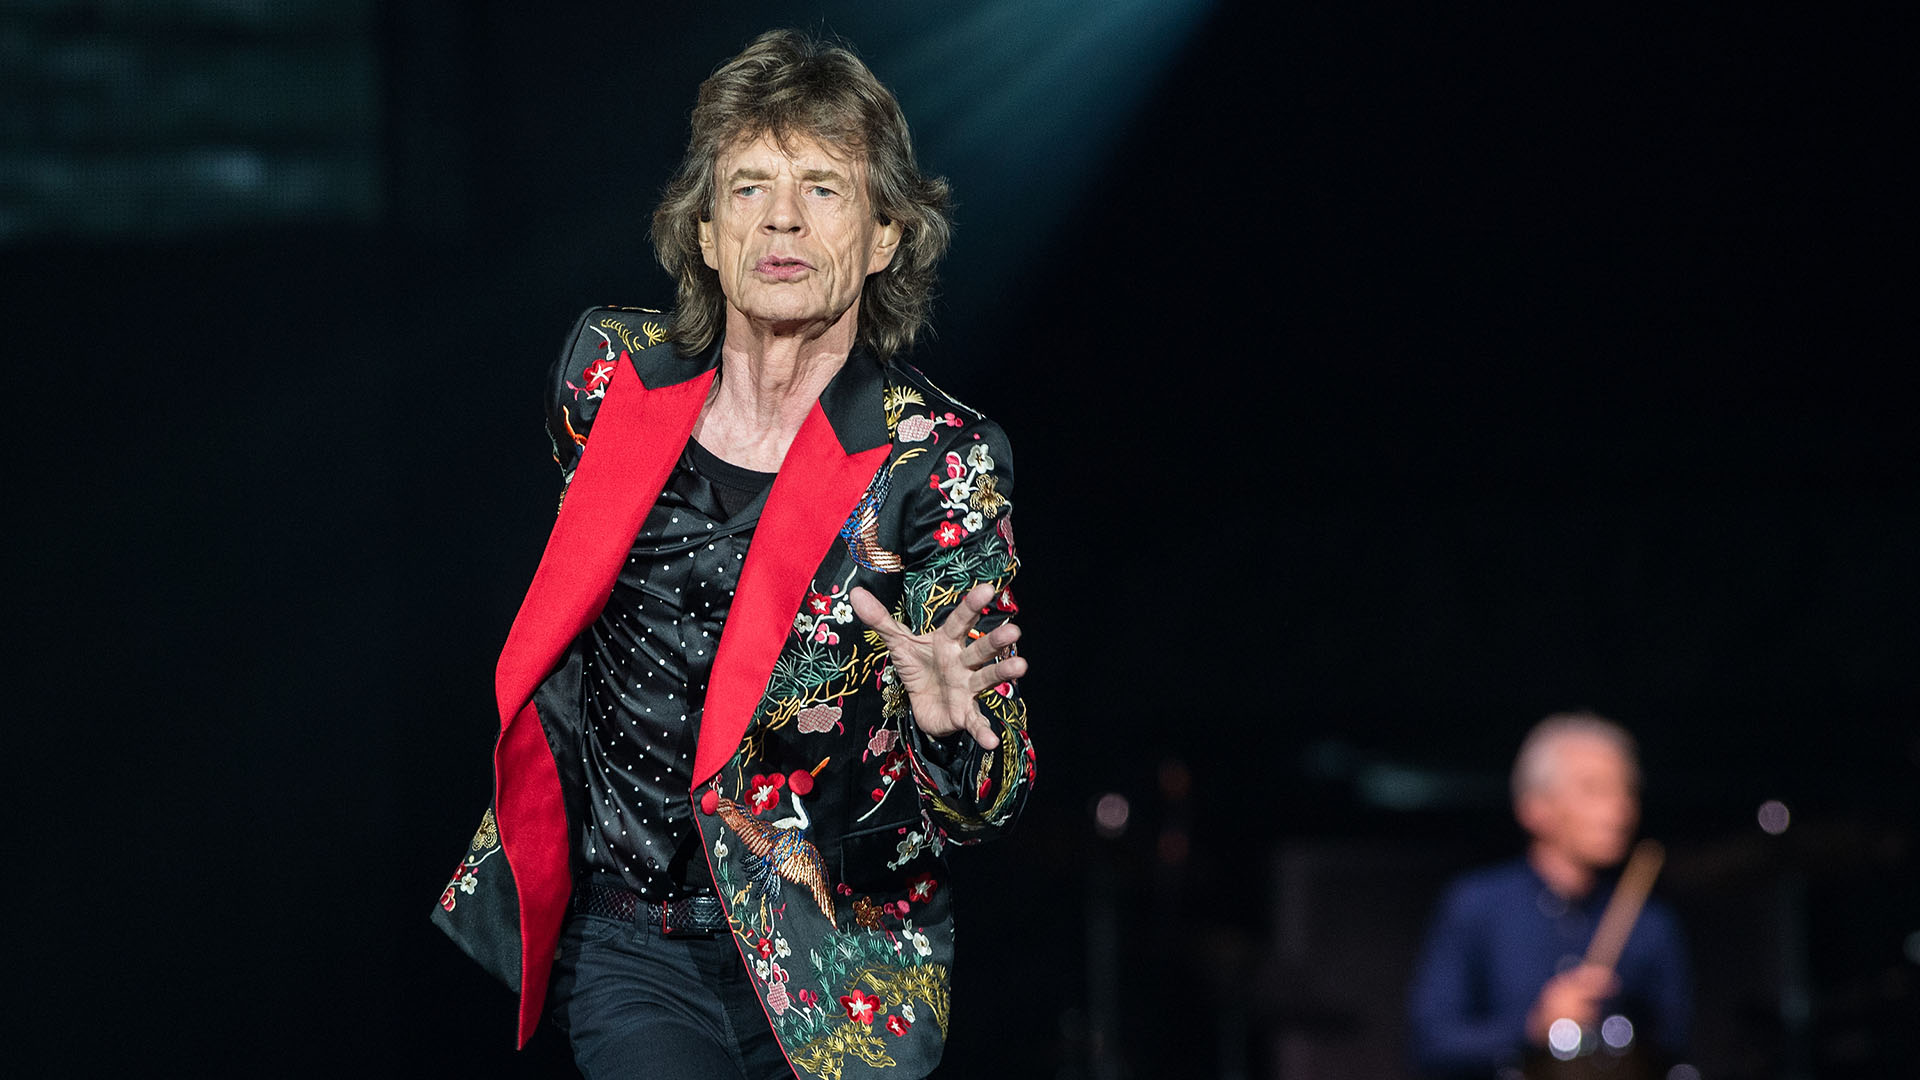 NANTERRE, FRANCE - OCTOBER 19: Mick Jagger of The Rolling Stones performs live on stage at U Arena on October 19, 2017 in Nanterre, France. (Photo by Brian Rasic/WireImage)